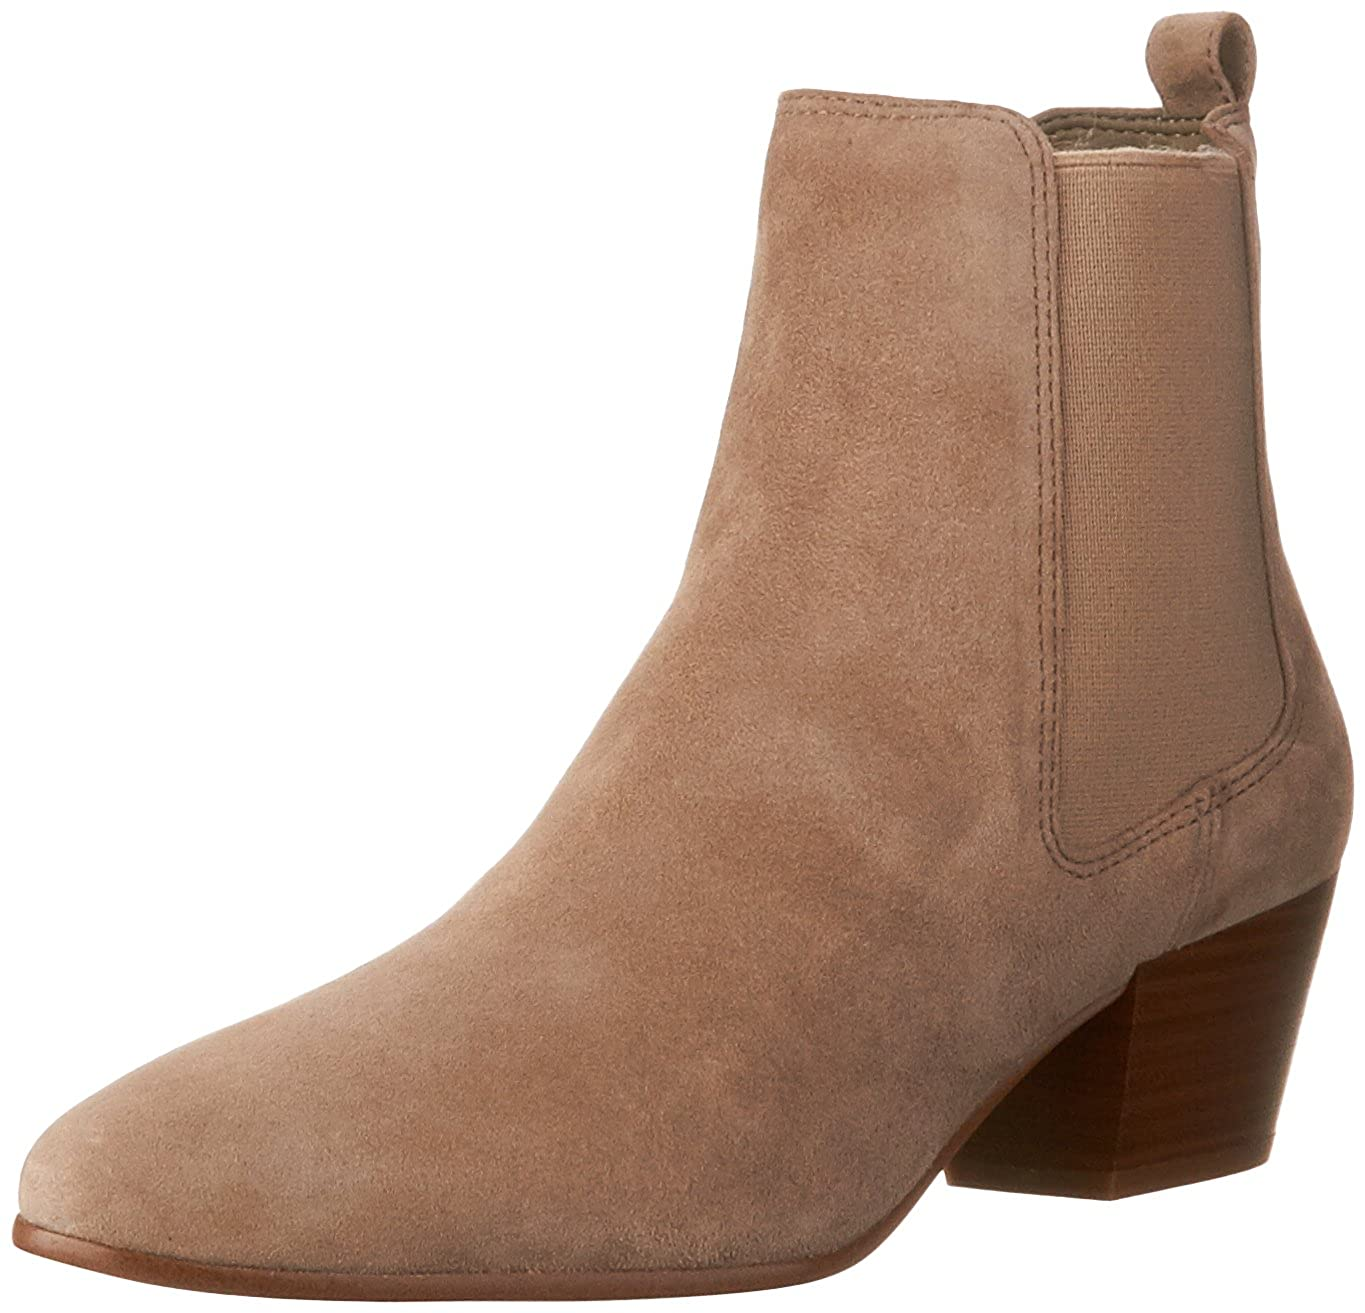 Putty Sam Edelman Womens Reesa Ankle Boot